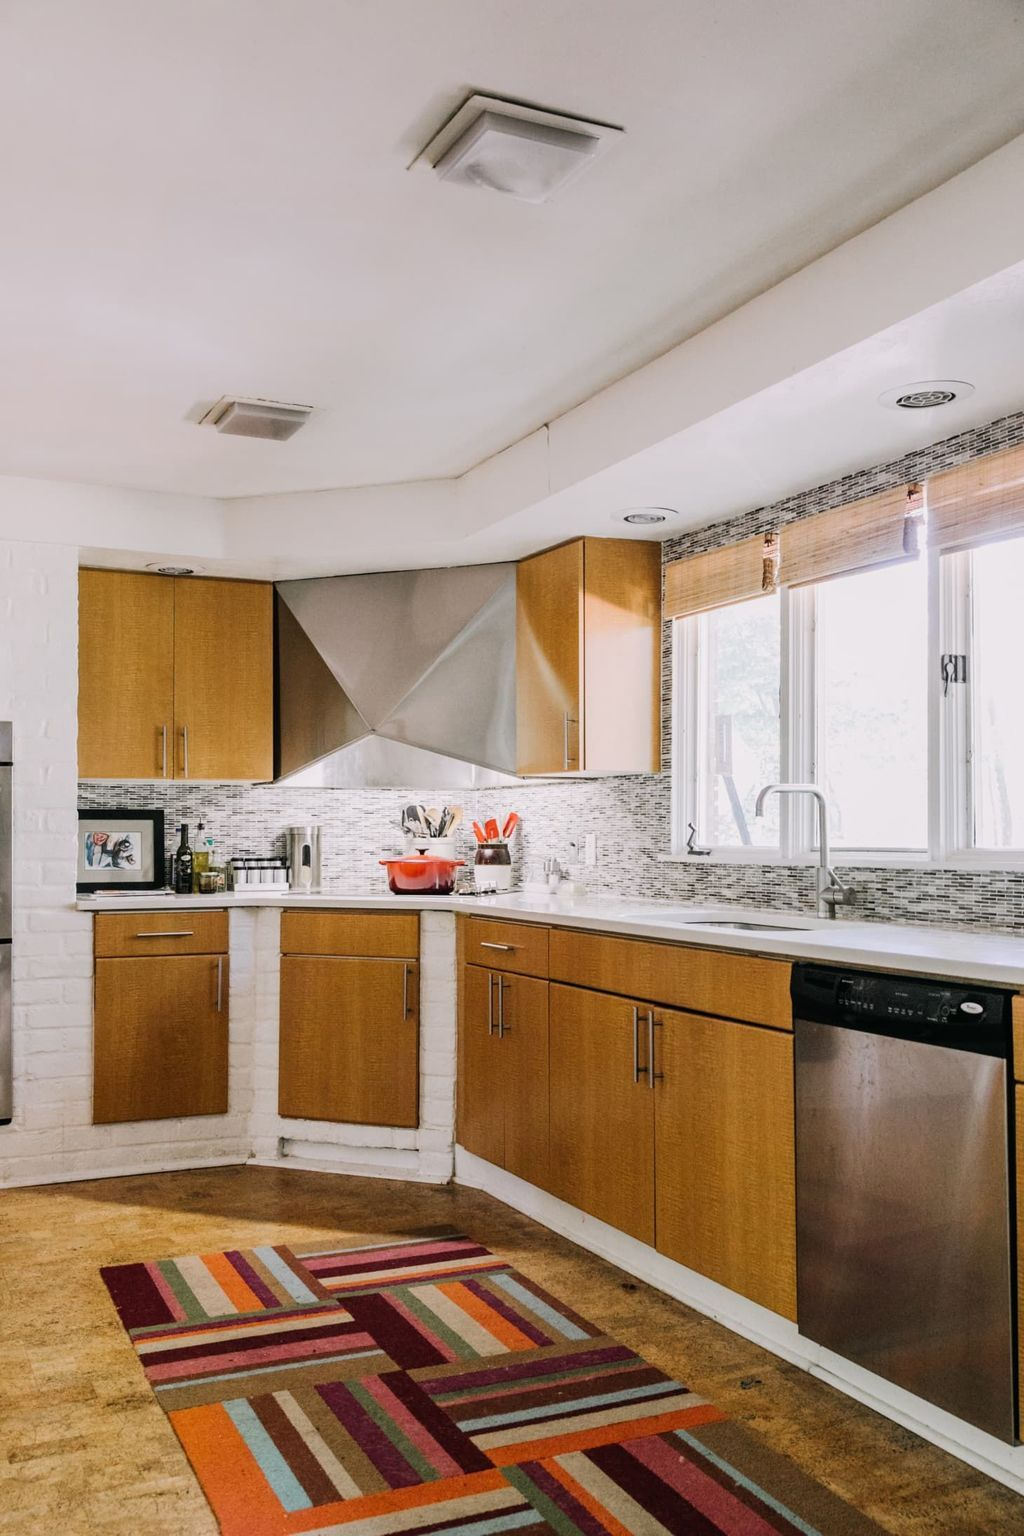 30 Popular Wooden Cabinets Design Ideas For Your Kitchen Decor In 2020 Kitchen Cabinets For Sale Mid Century Modern House Buy Kitchen Cabinets